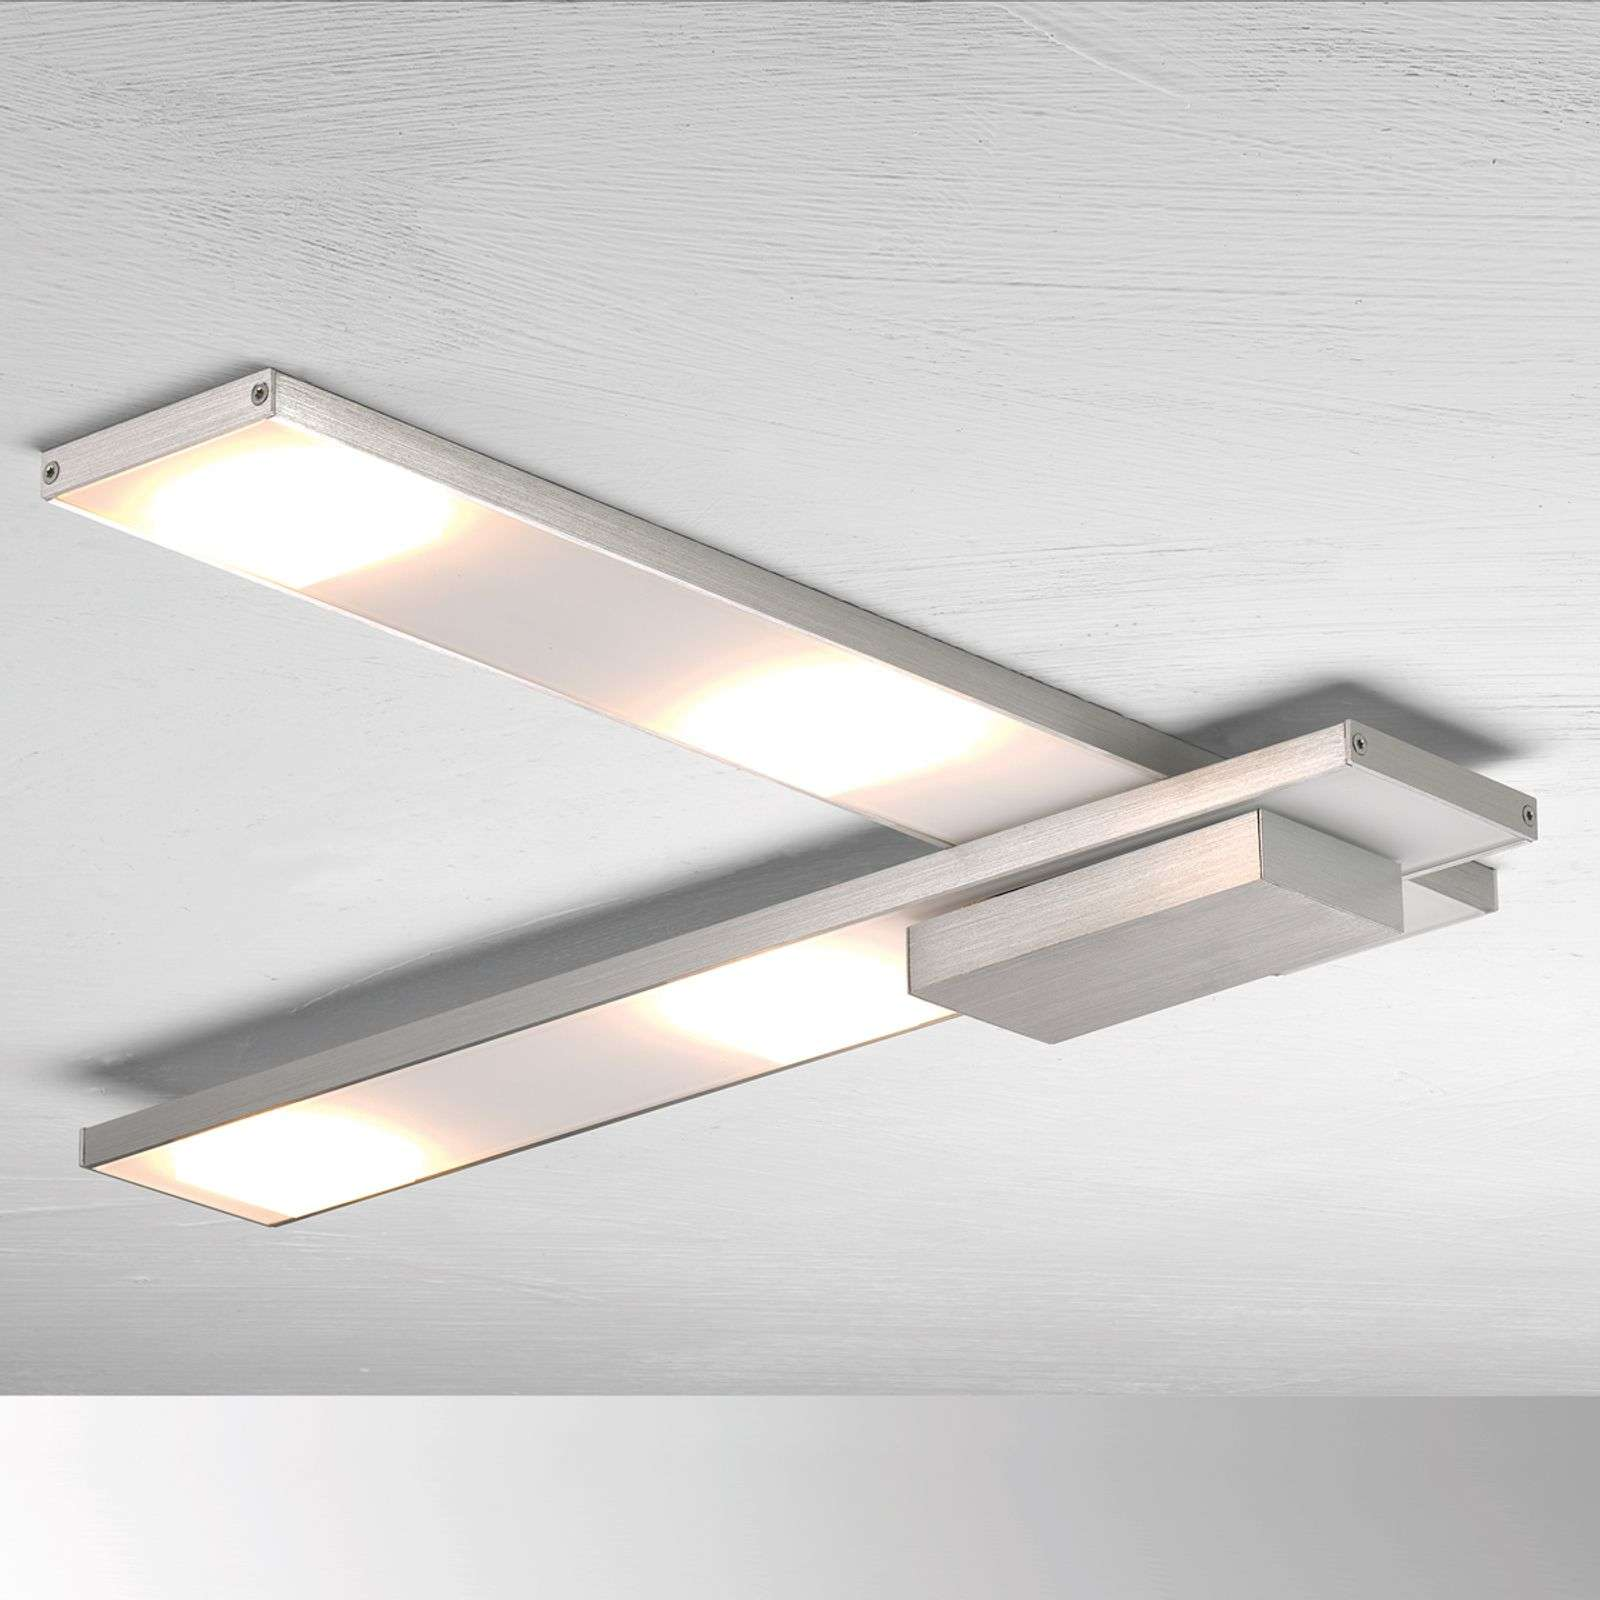 Raffinata plafoniera LED Slight, alluminio